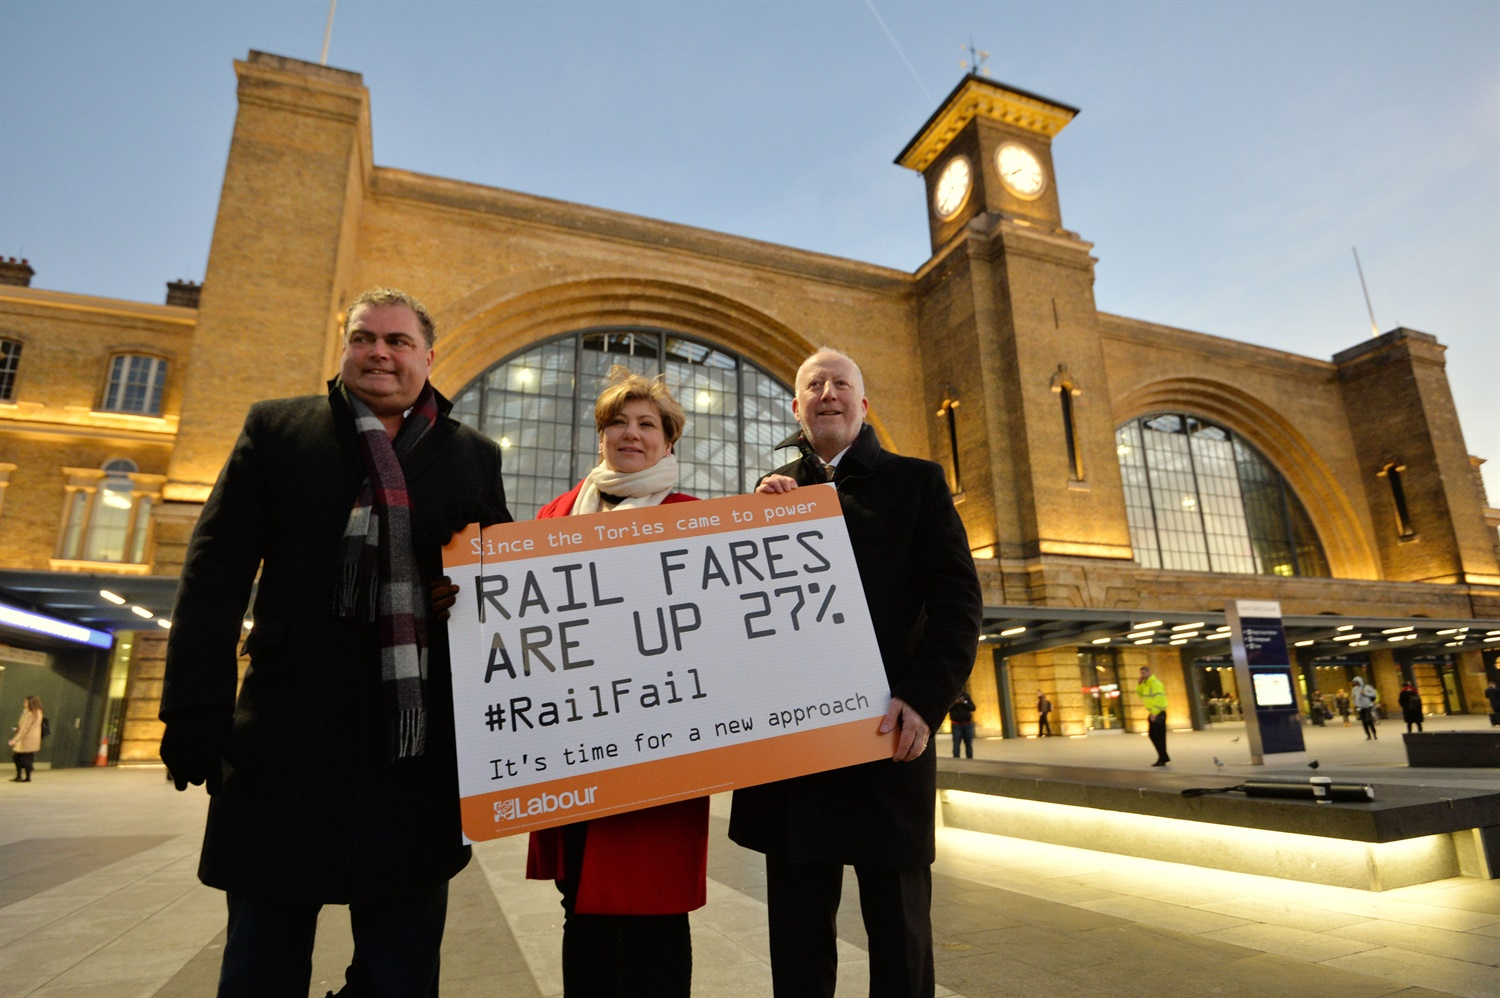 Commuters protest for being 'fleeced' by steep rail fare hikes